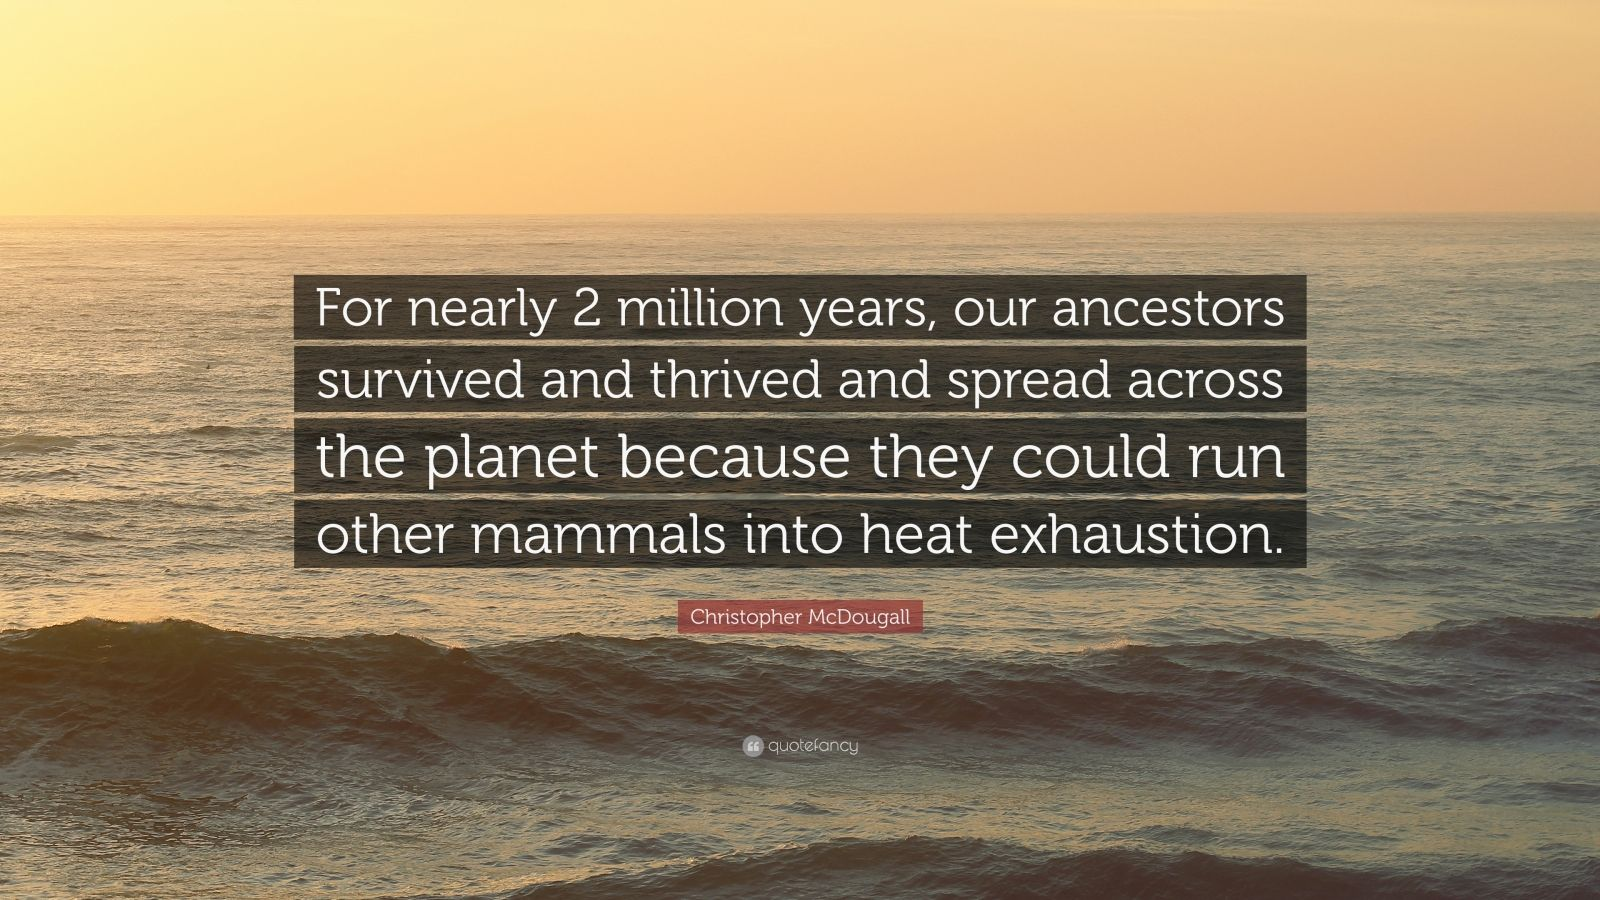 "Christopher McDougall Quote: ""For nearly 2 million years, our ancestors survived and thrived and spread across the planet because they could run other mammals into heat exhaustion."""